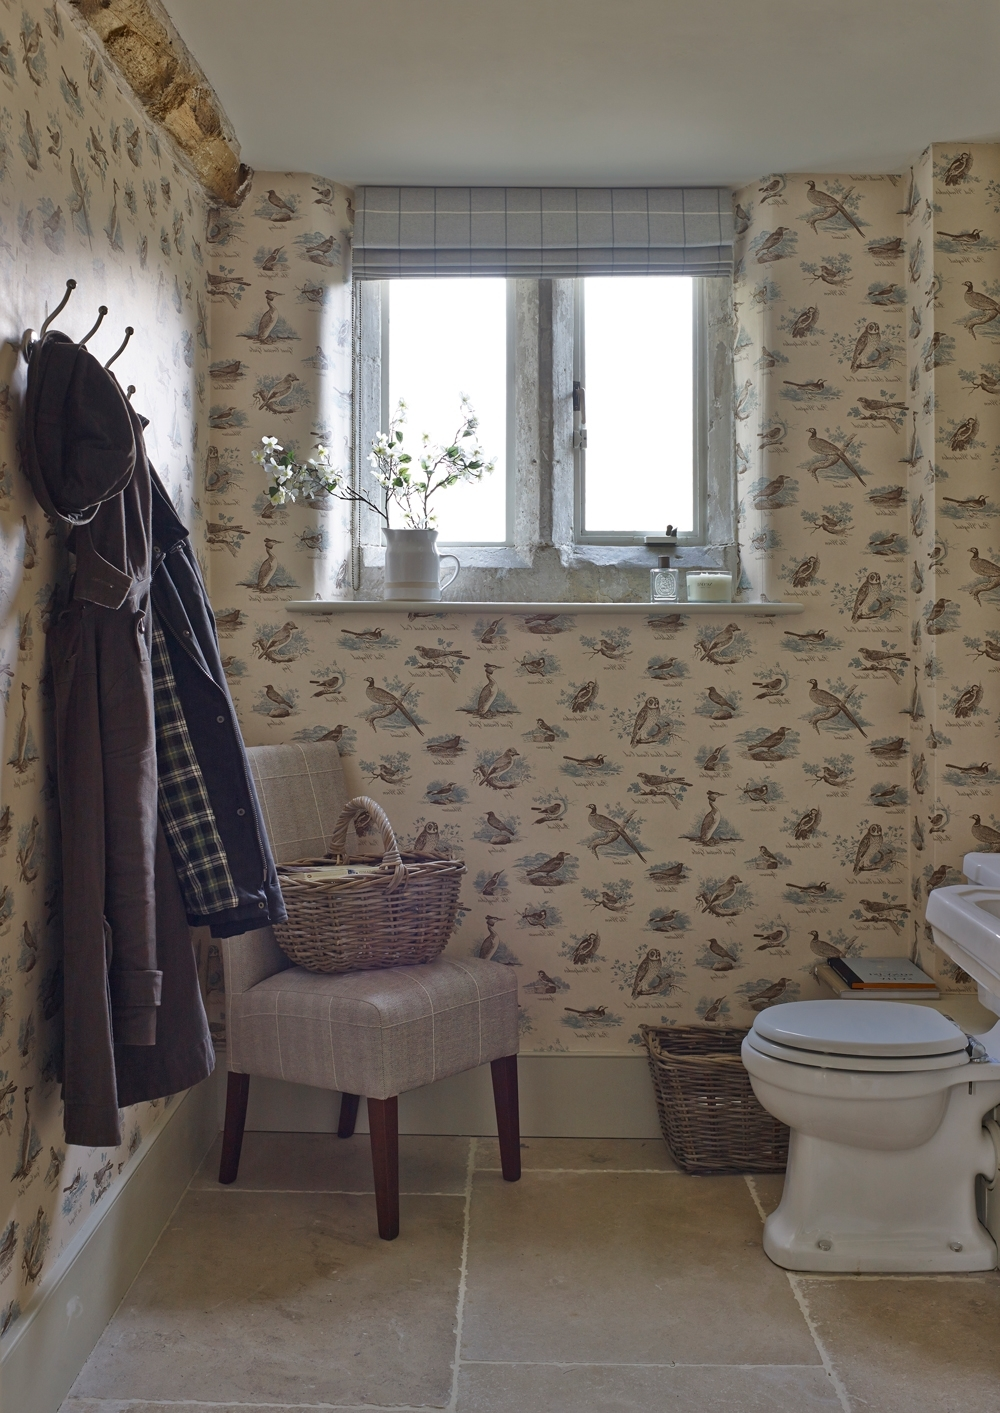 Cloakroom Ideas For Small Spaces – Downstairs Toilet Ideas 10+ Downstairs Bathroom Wallpaper Inspirations